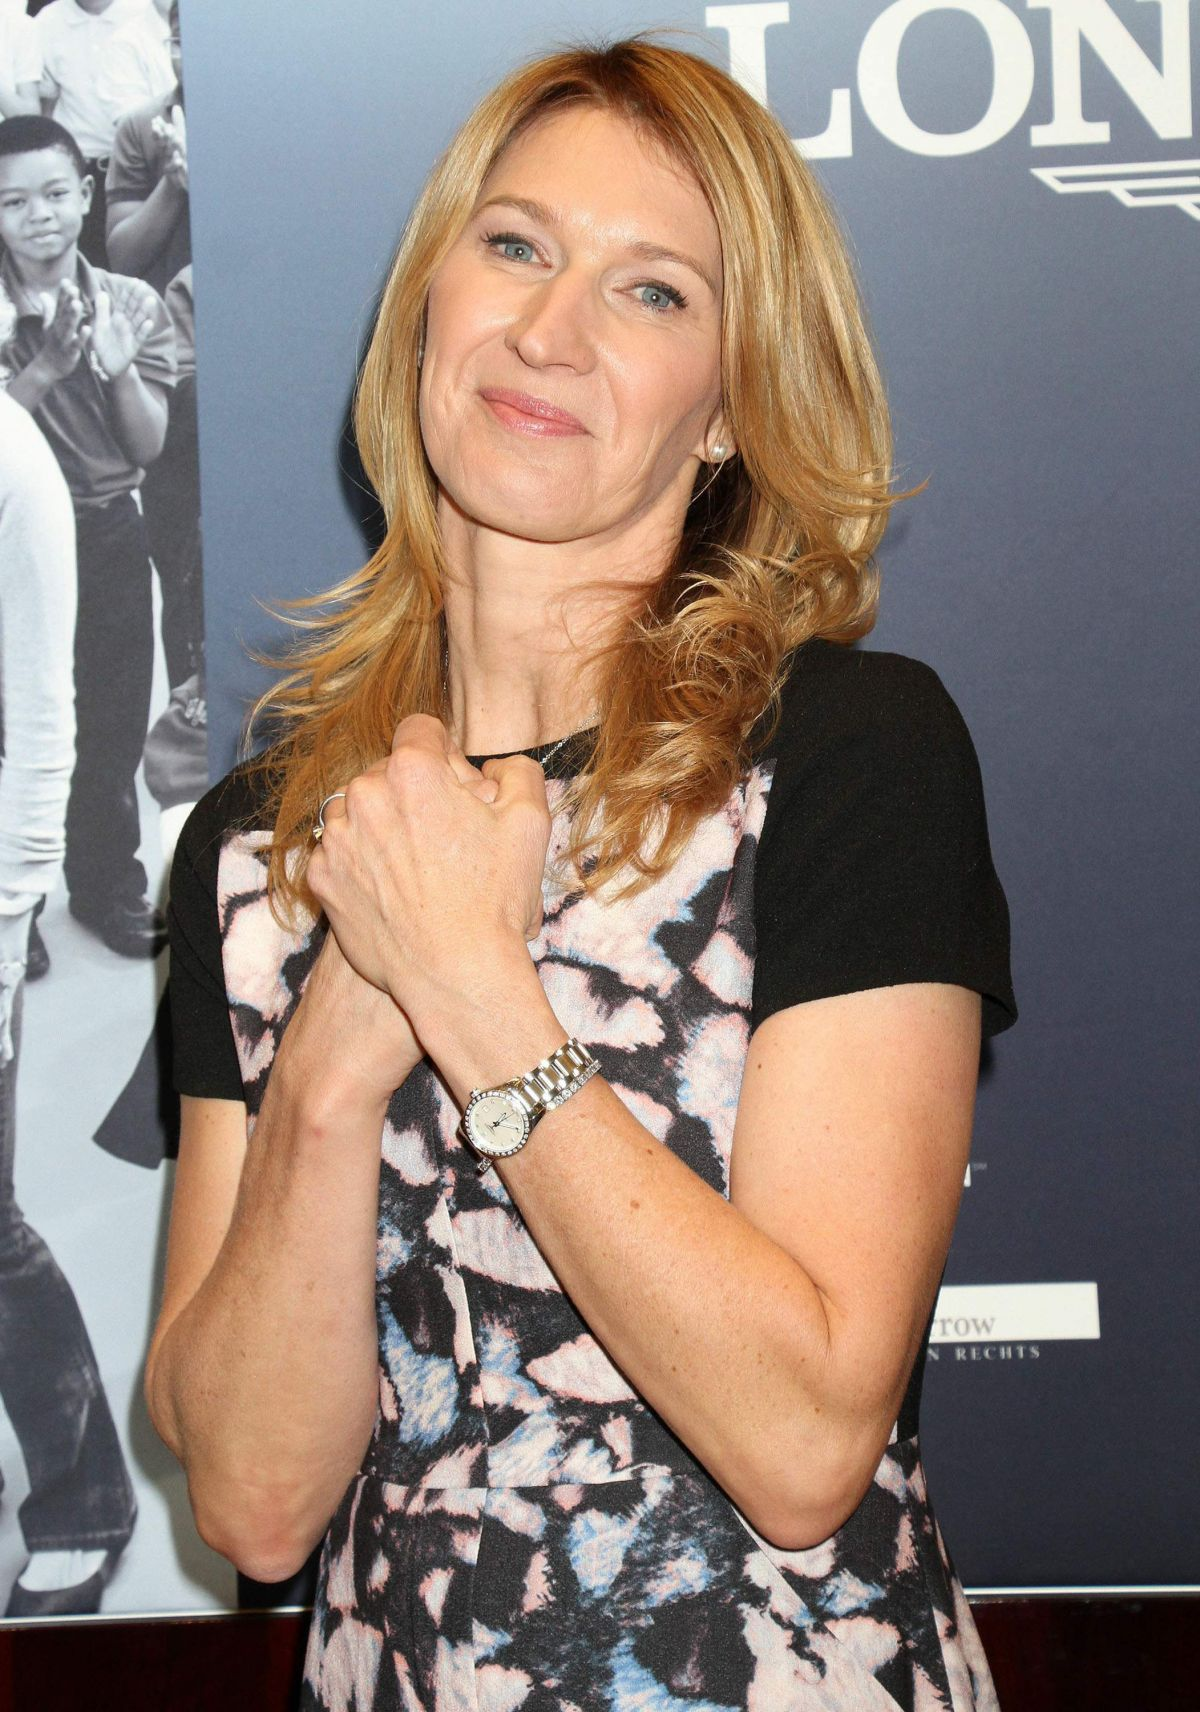 Images Steffi Graf Great steffi graf hosted hour passion boutique grand opening in las